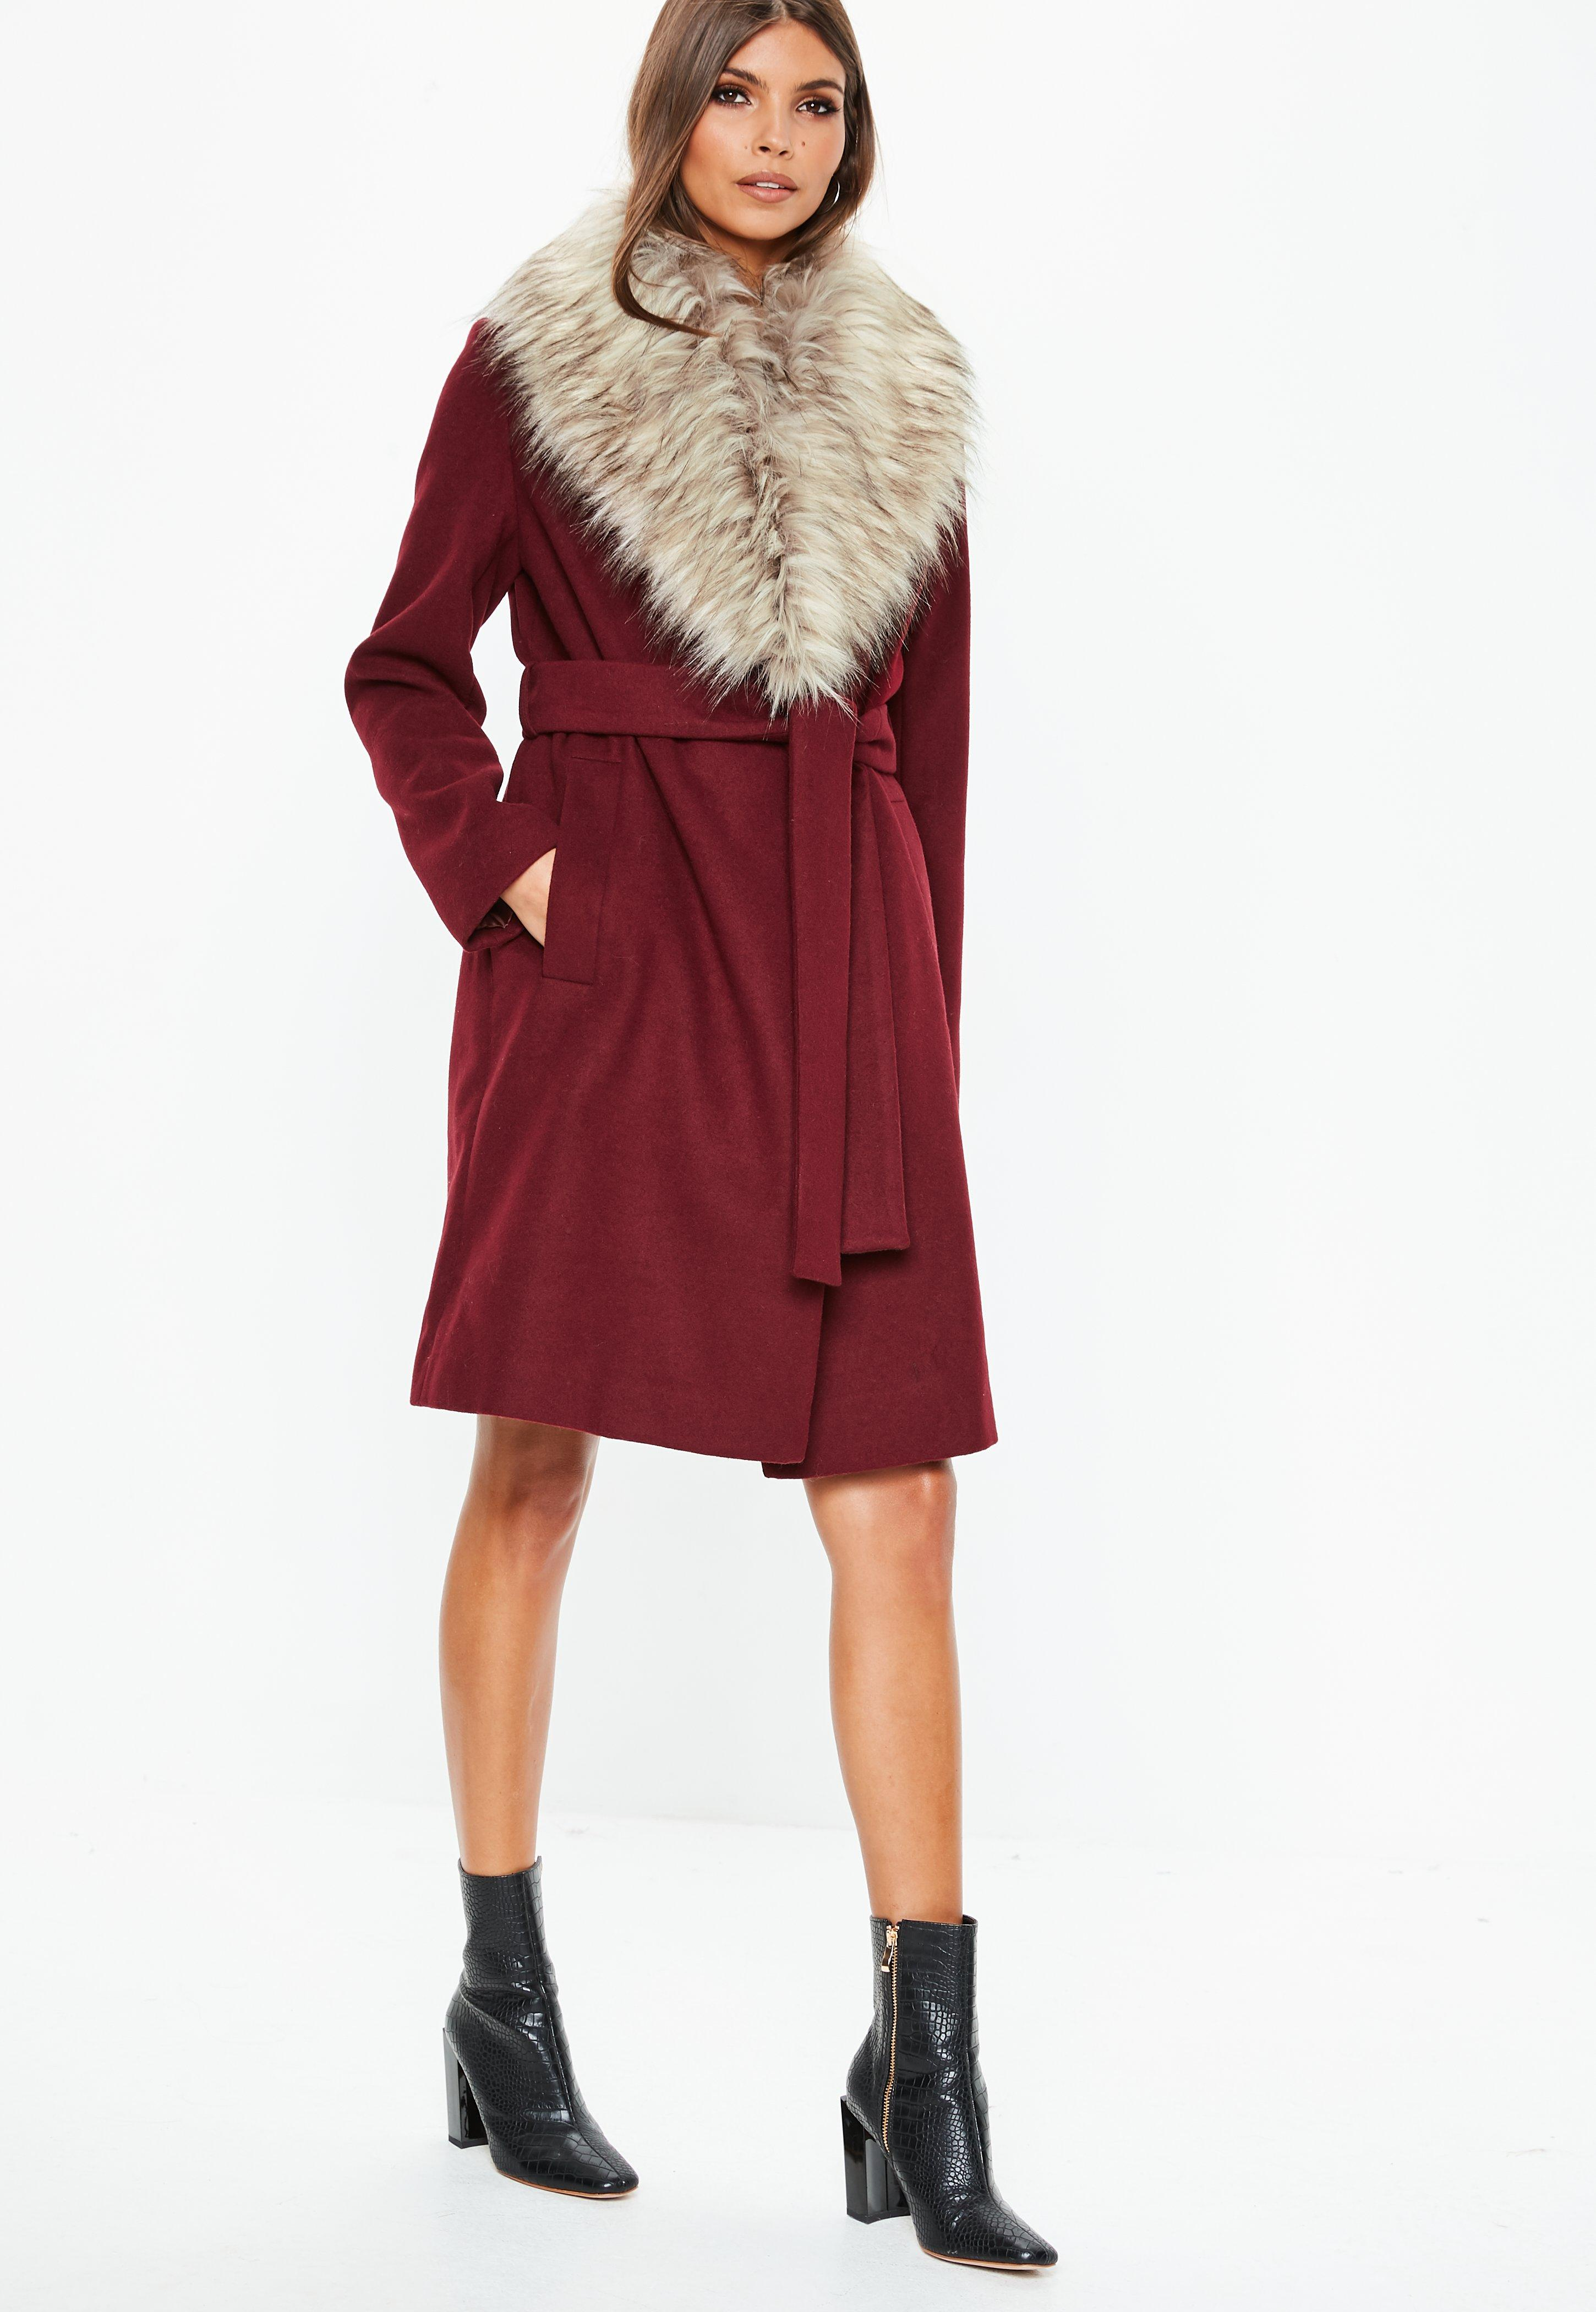 936b6fa37a0 Faux Fur Coats